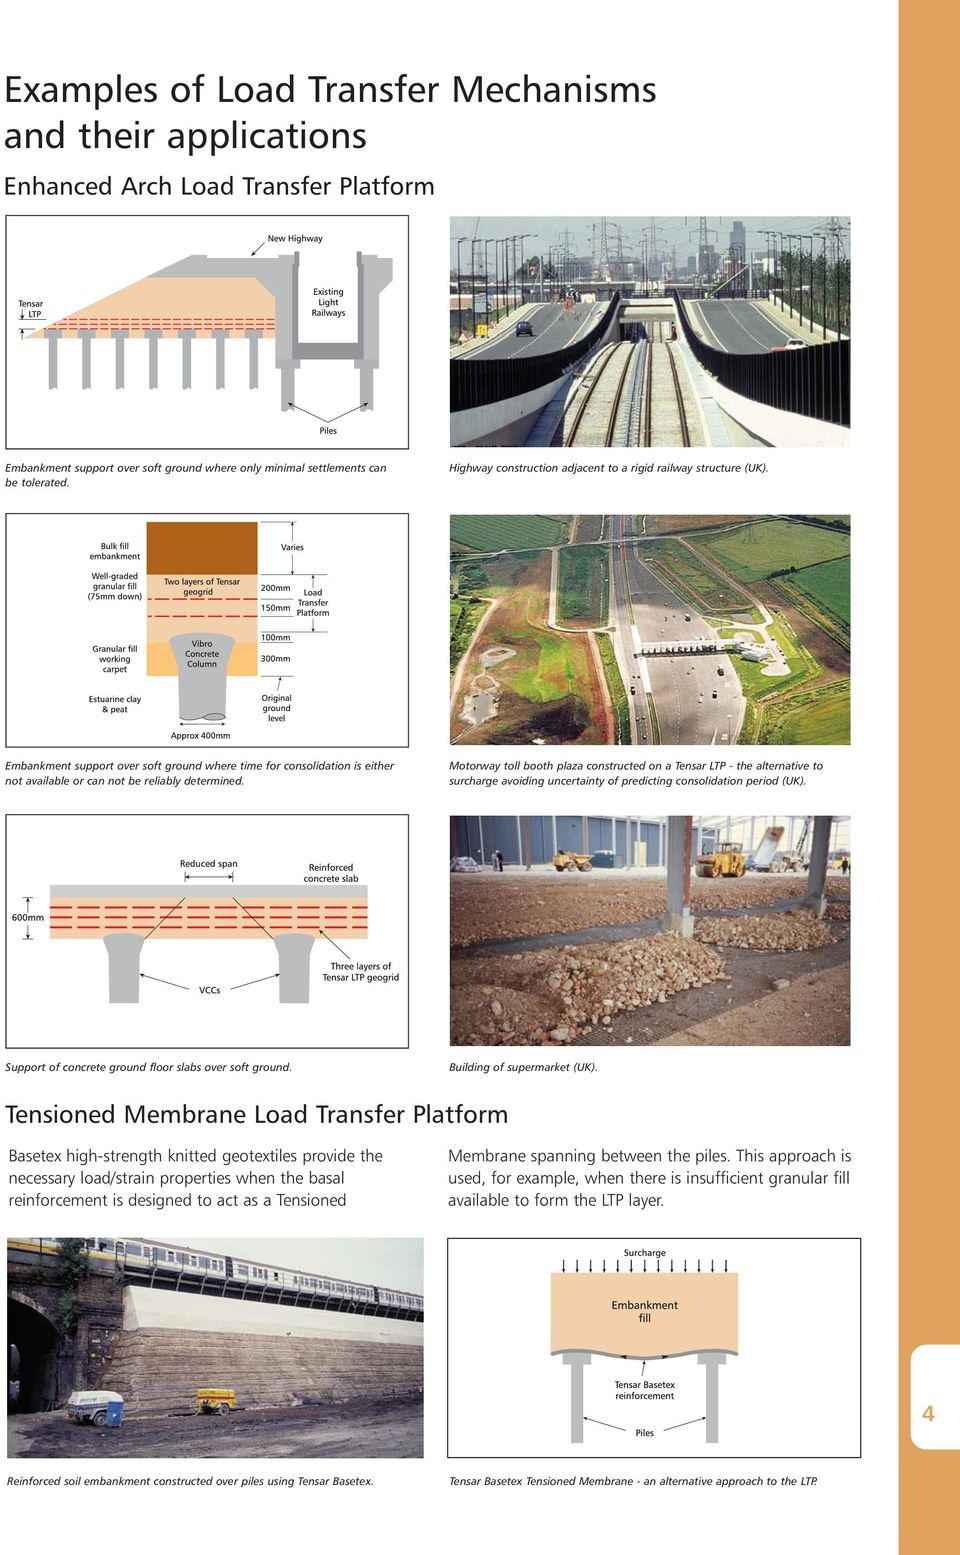 Motorway toll booth plaza constructed on a Tensar LTP - the alternative to surcharge avoiding uncertainty of predicting consolidation period (UK).